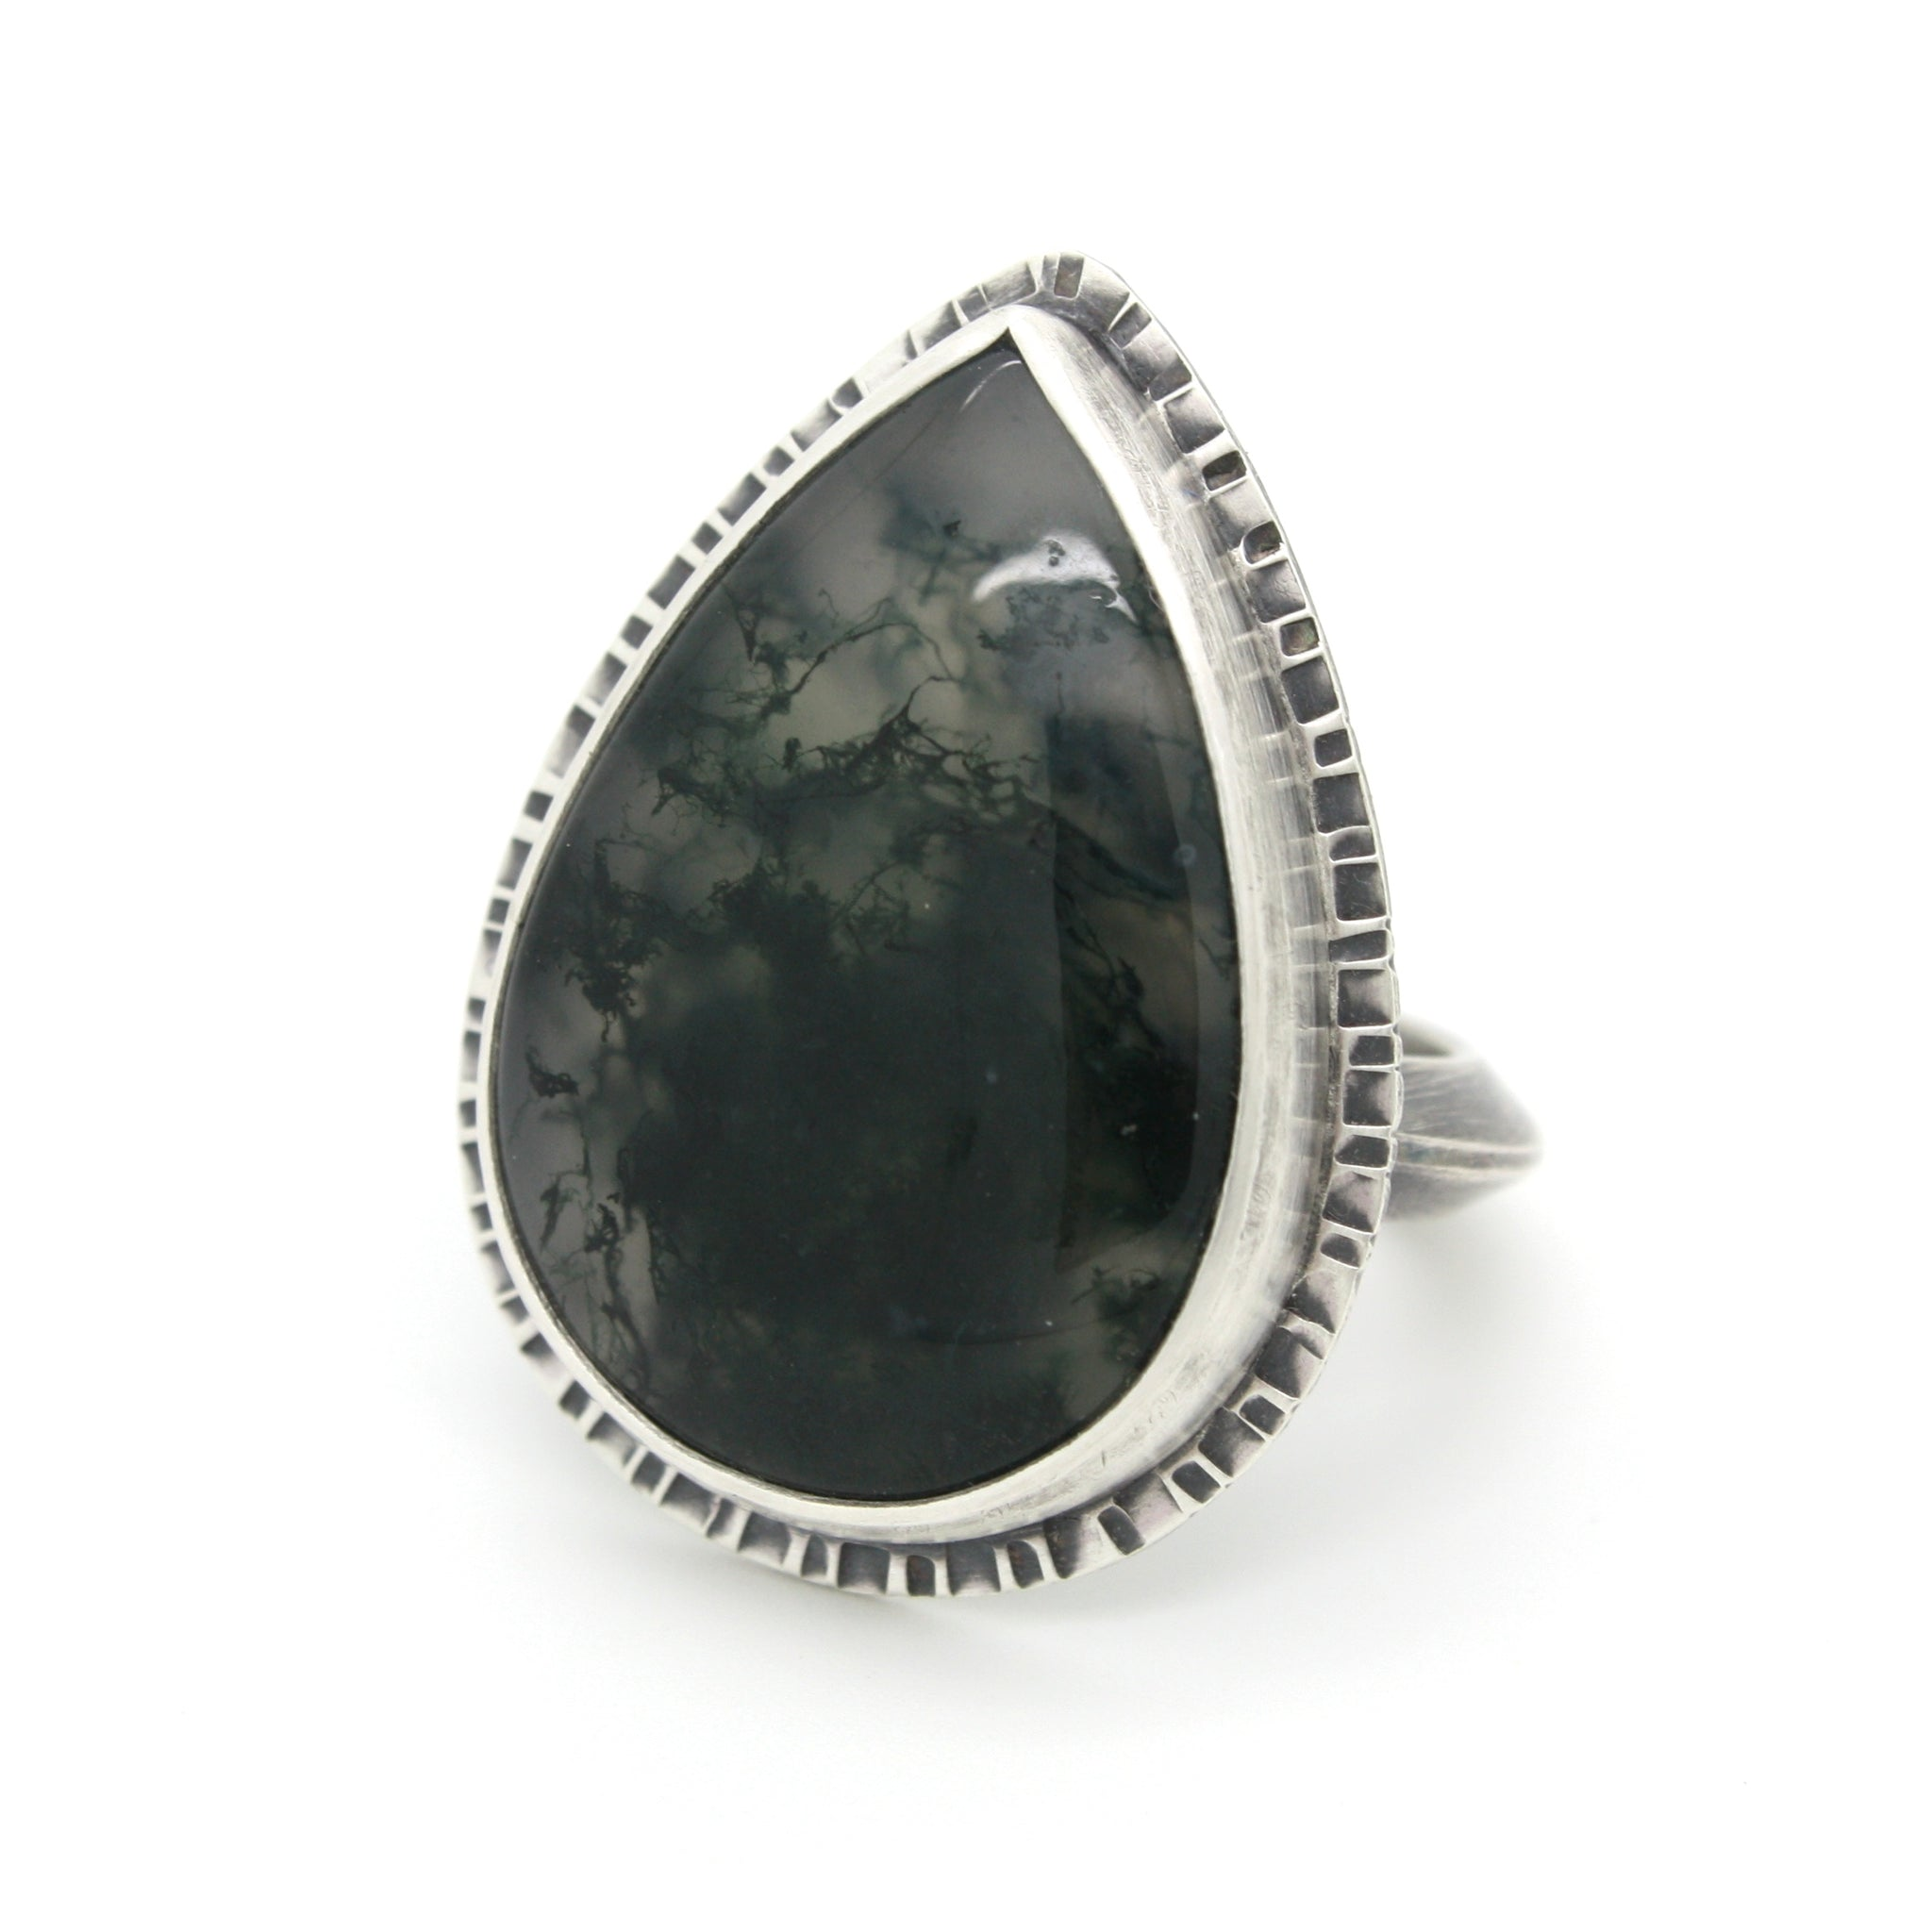 Textured Moss Agate Teardrop Ring | Size 8.5